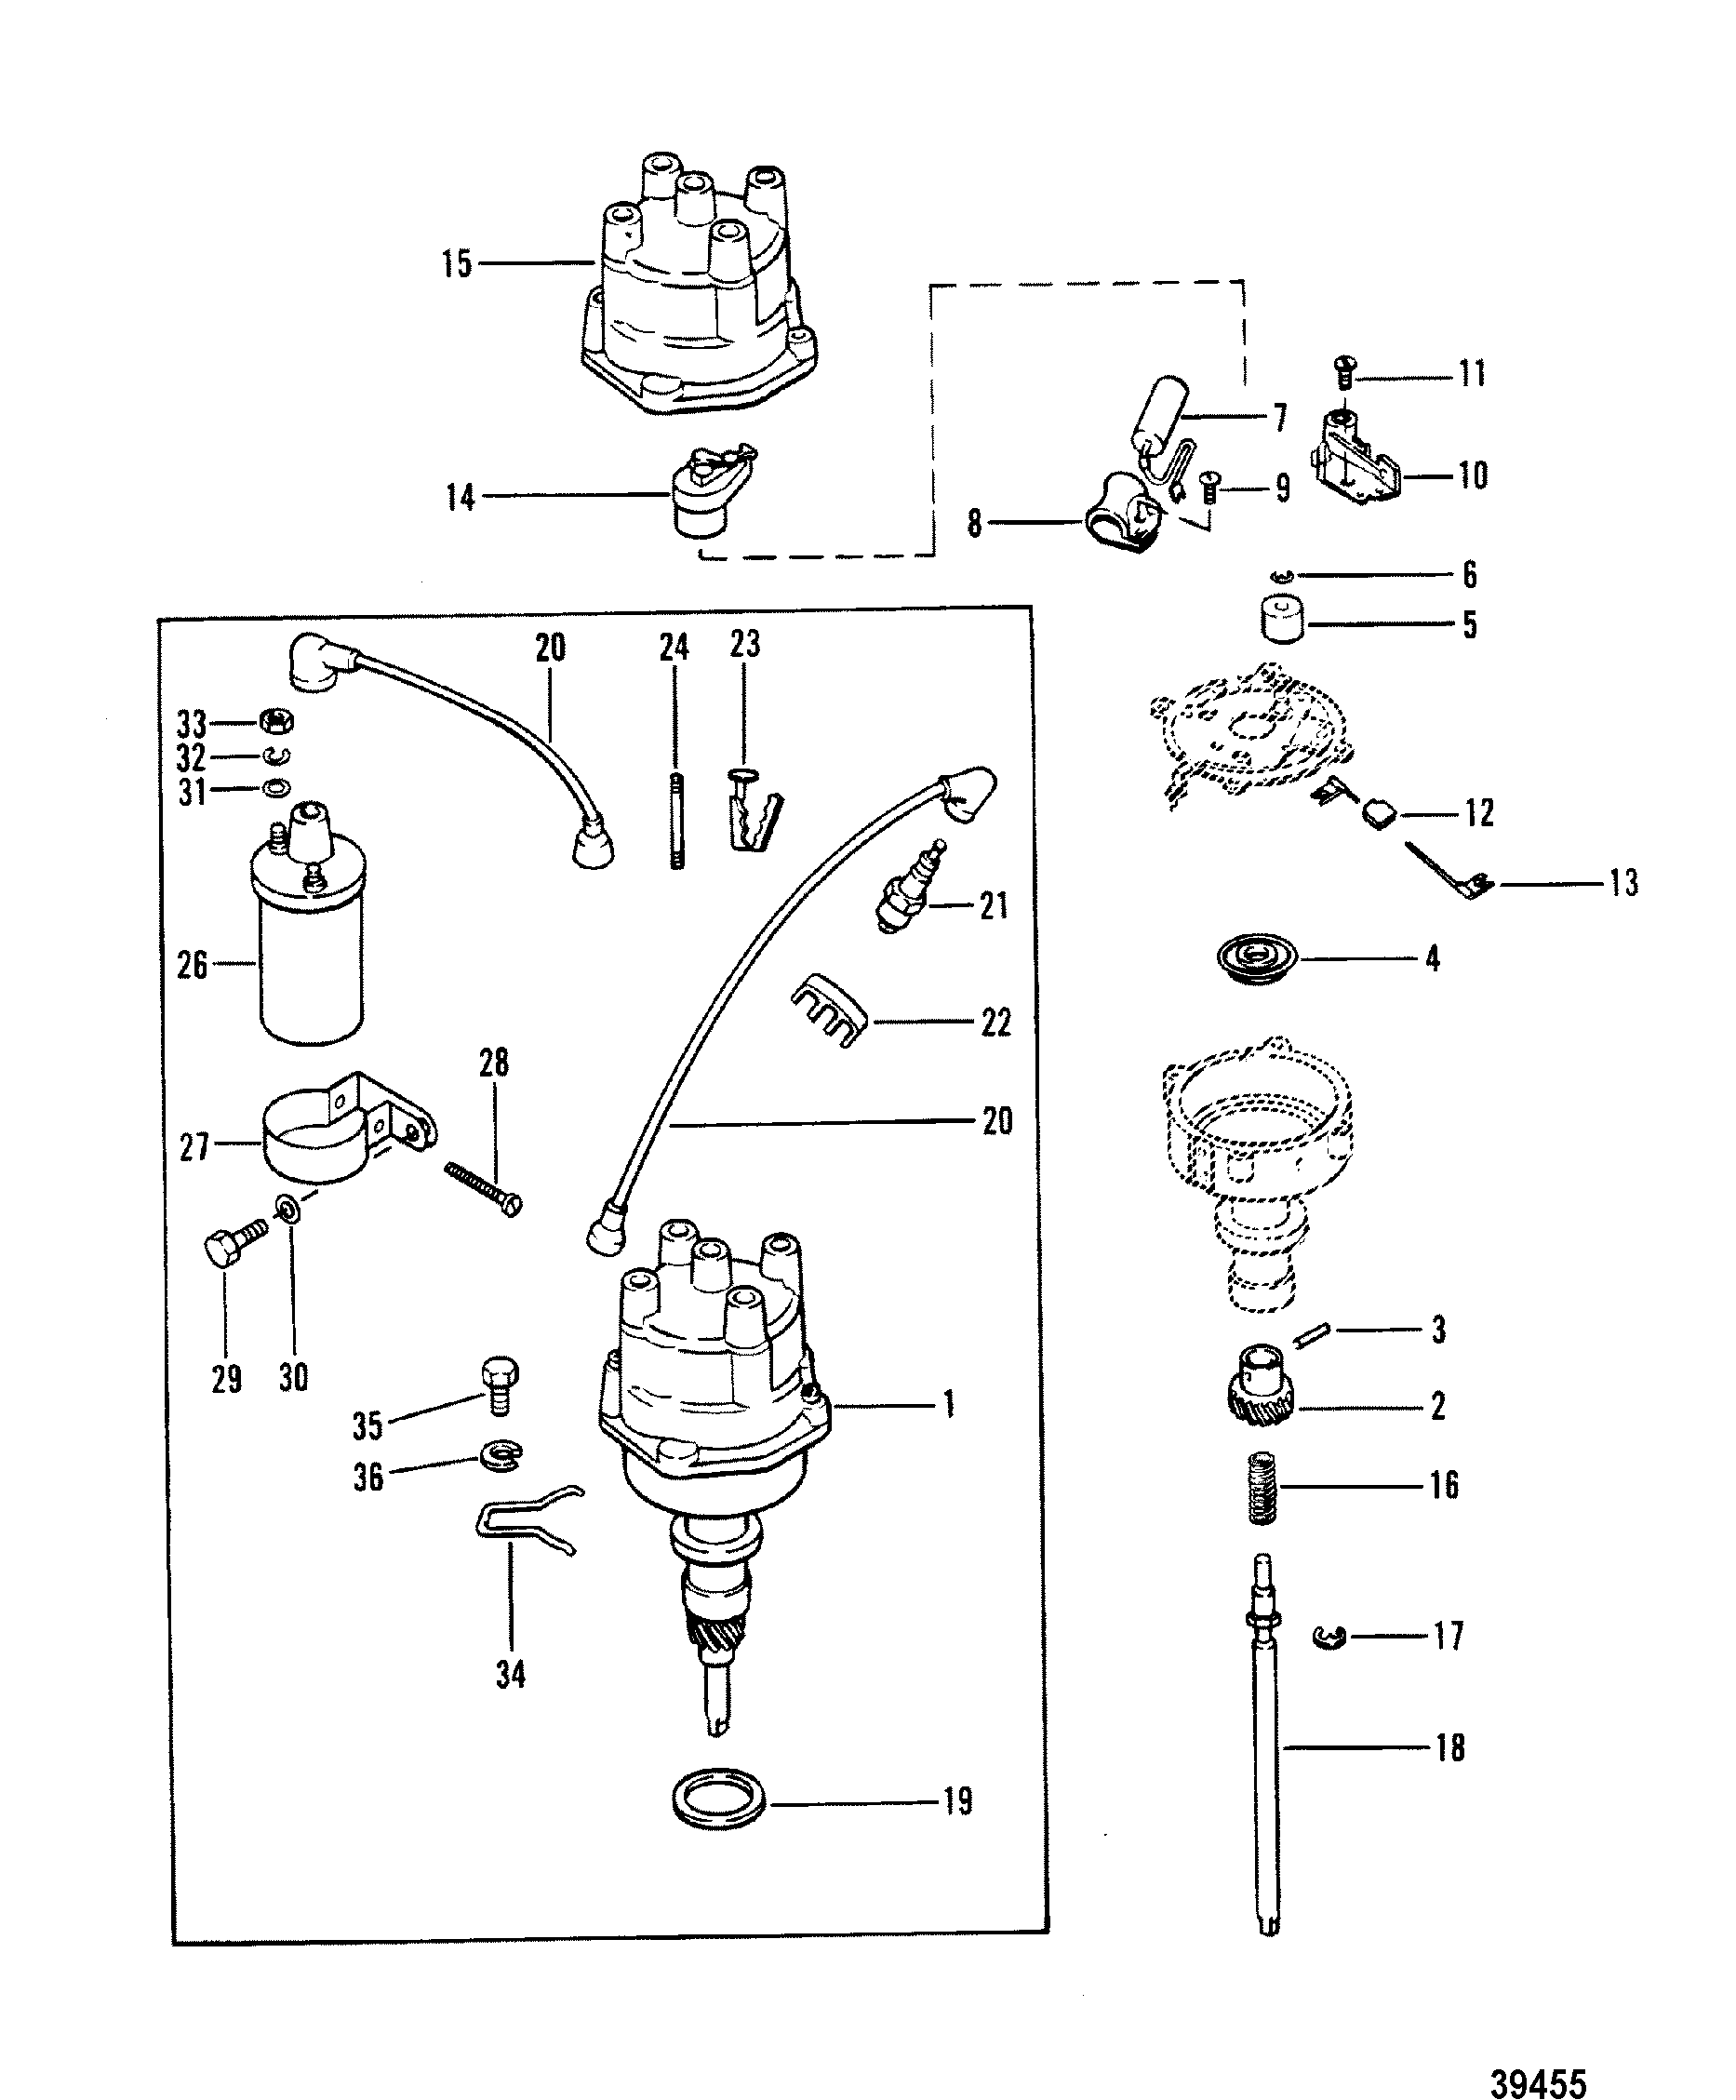 mercruiser thunderbolt iv ignition wiring diagram mercruiser ignition wiring diagram 1980 165 mercury ignition automotive on mercruiser thunderbolt iv ignition wiring diagram